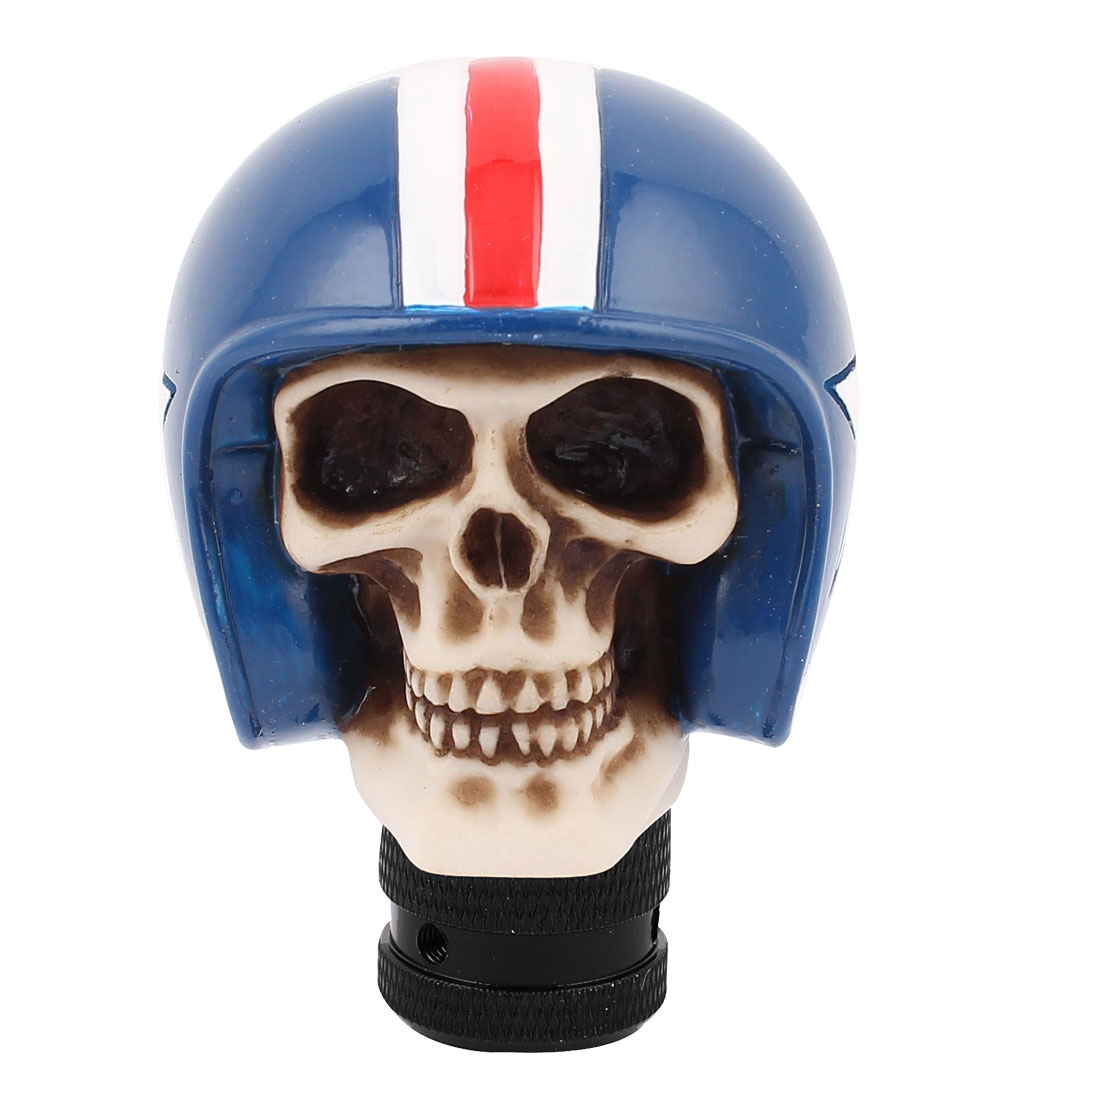 Blue Cap Skull Head Shape Stick Gear Shift Knob Shifter Cover for Car Auto